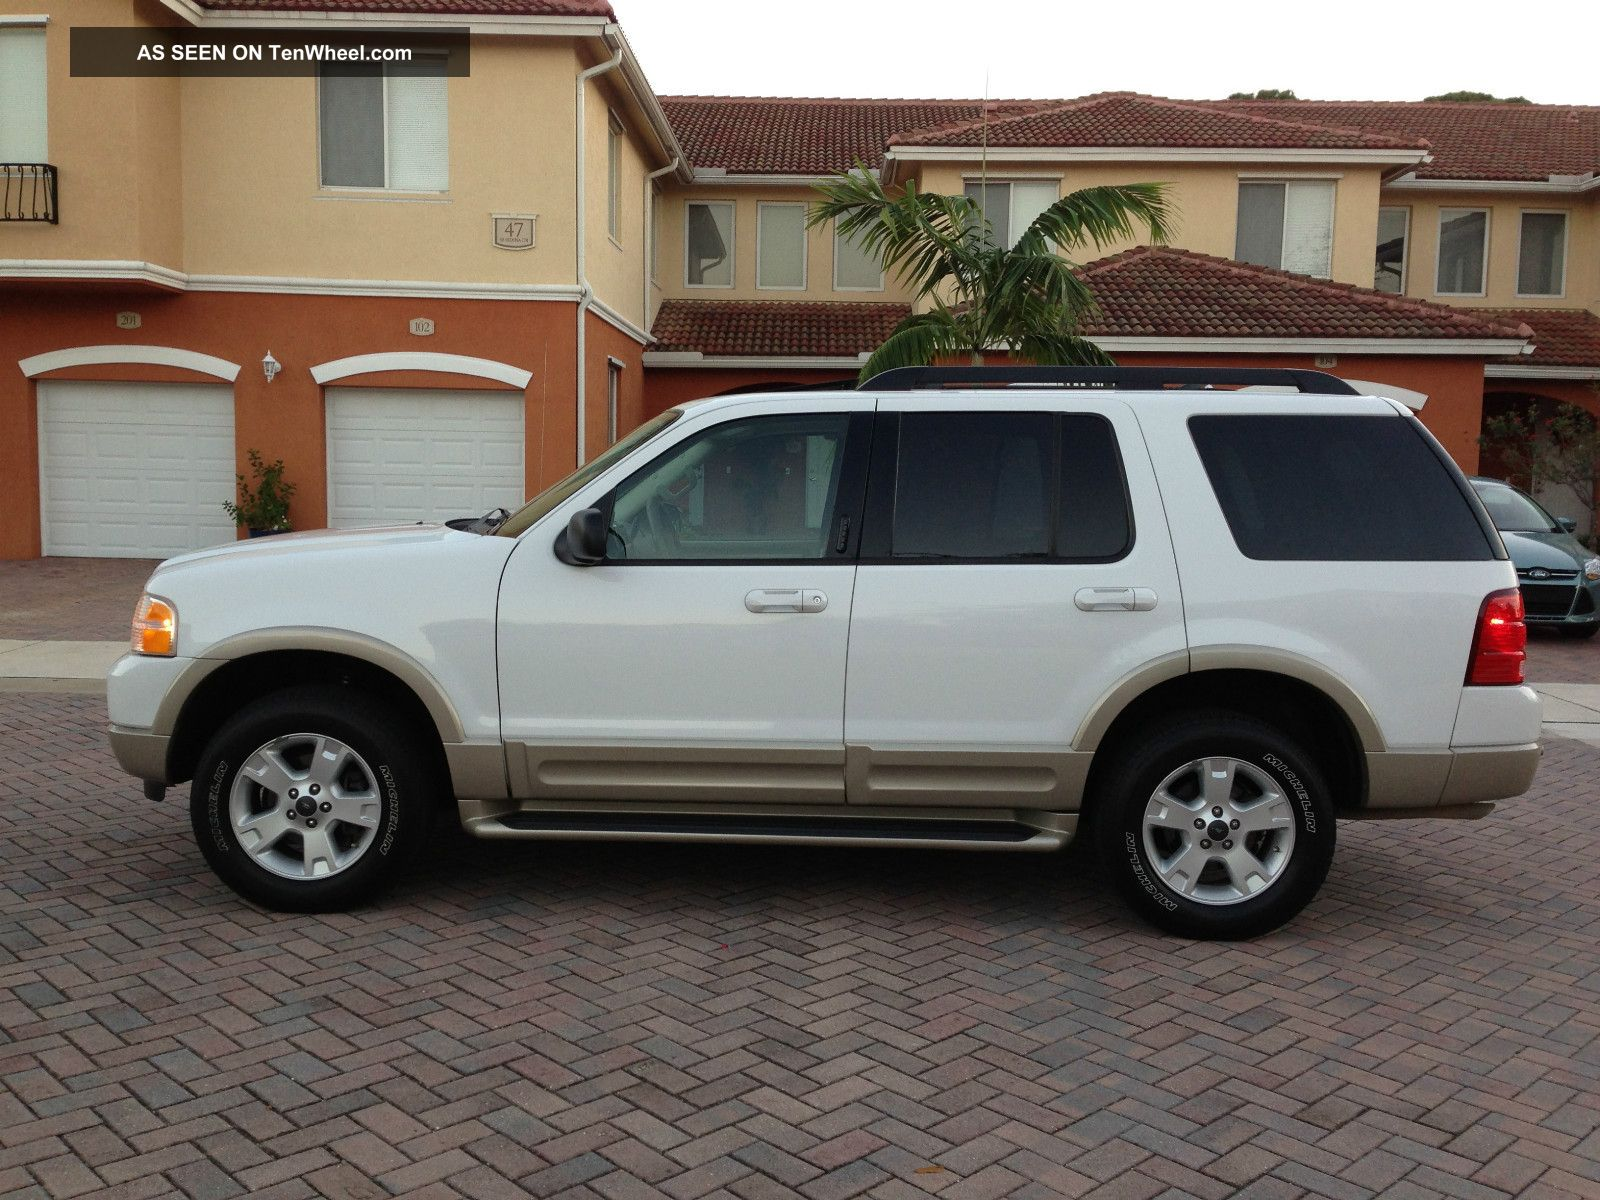 2005 ford explorer sport trac specs new and used car. Black Bedroom Furniture Sets. Home Design Ideas